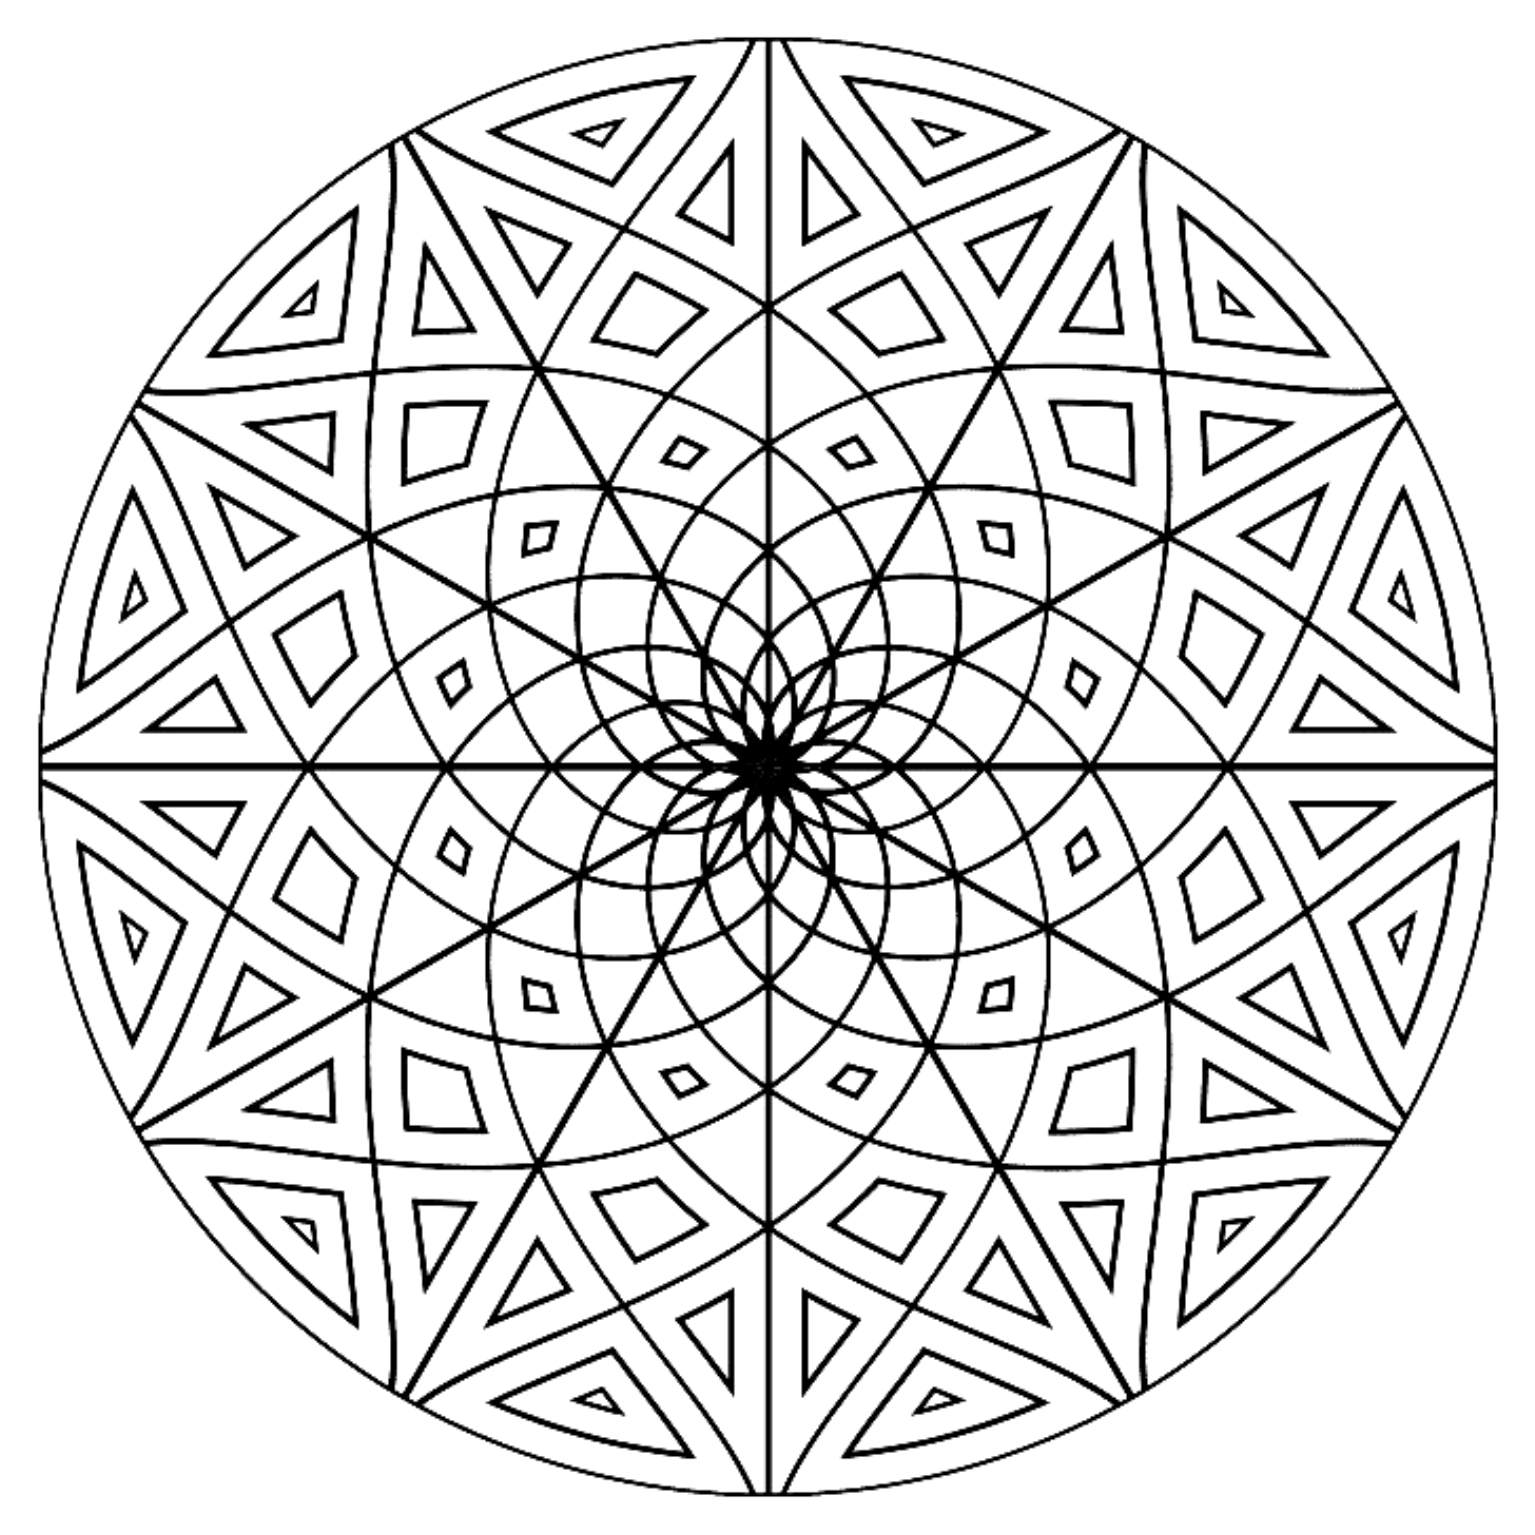 mandala pictures to color 19 mandala animal coloring pages download coloring sheets mandala pictures color to